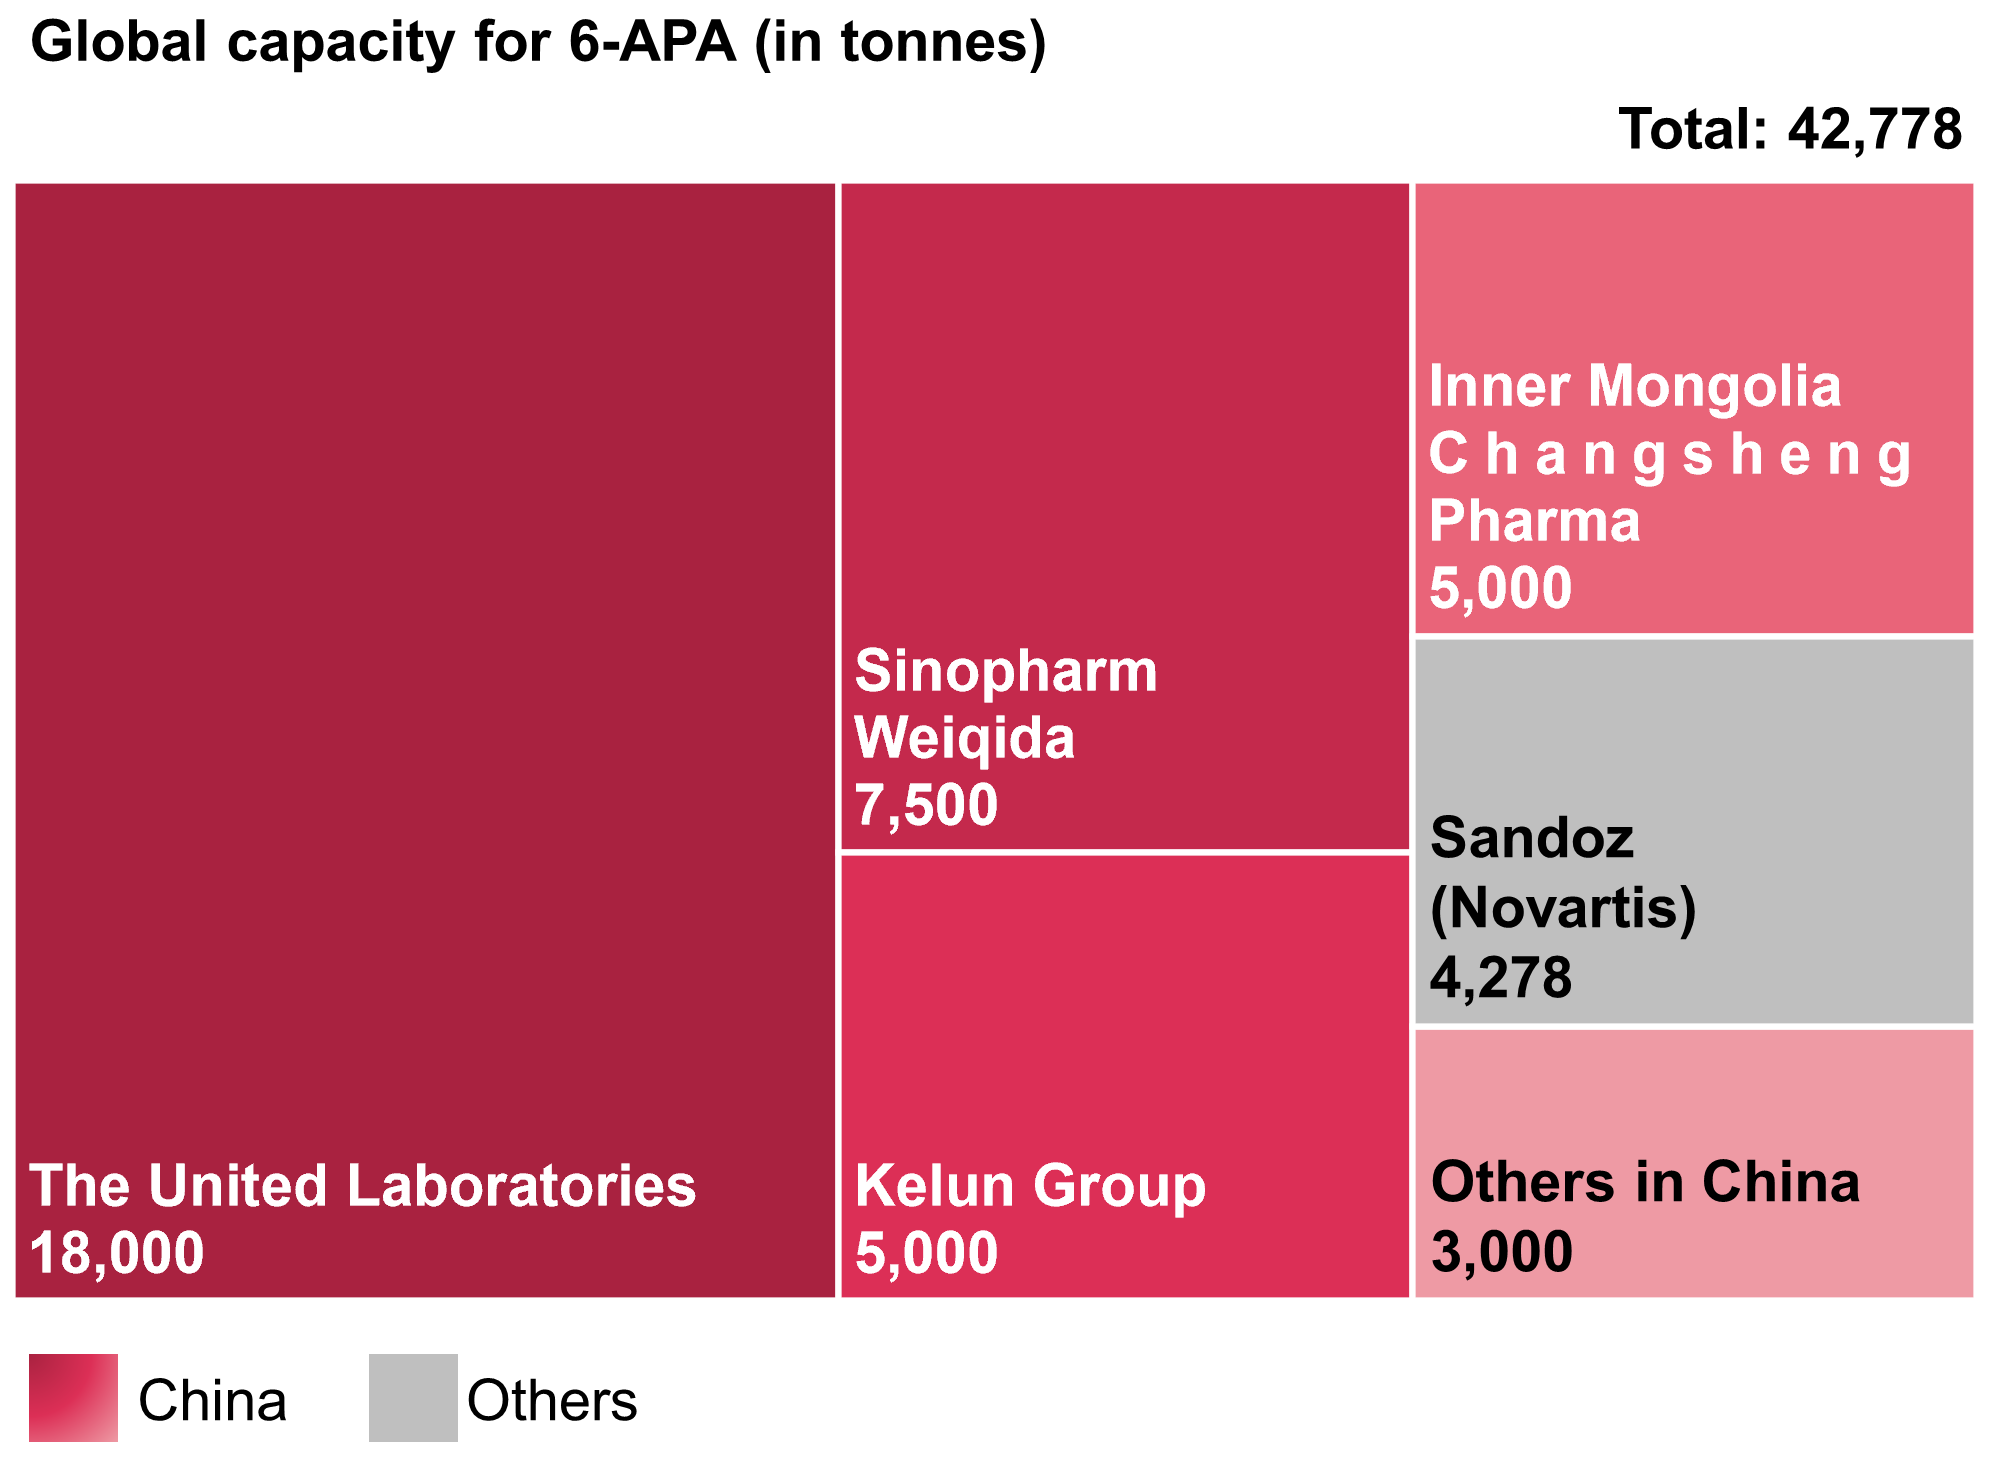 Global capacity for 6-APA